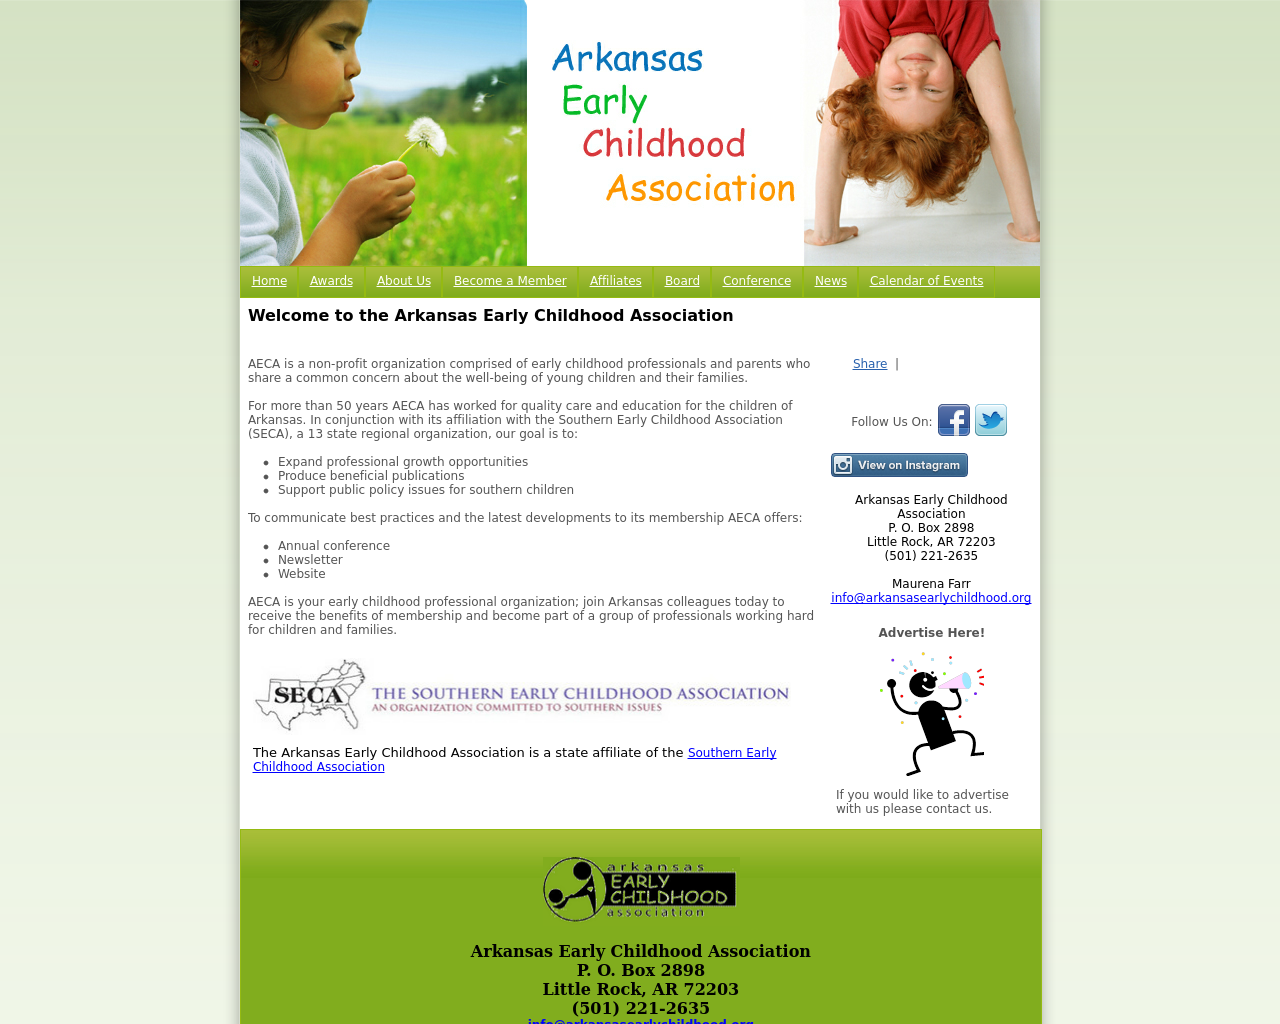 Arkansas-Early-Childhood-Association-Advertising-Reviews-Pricing